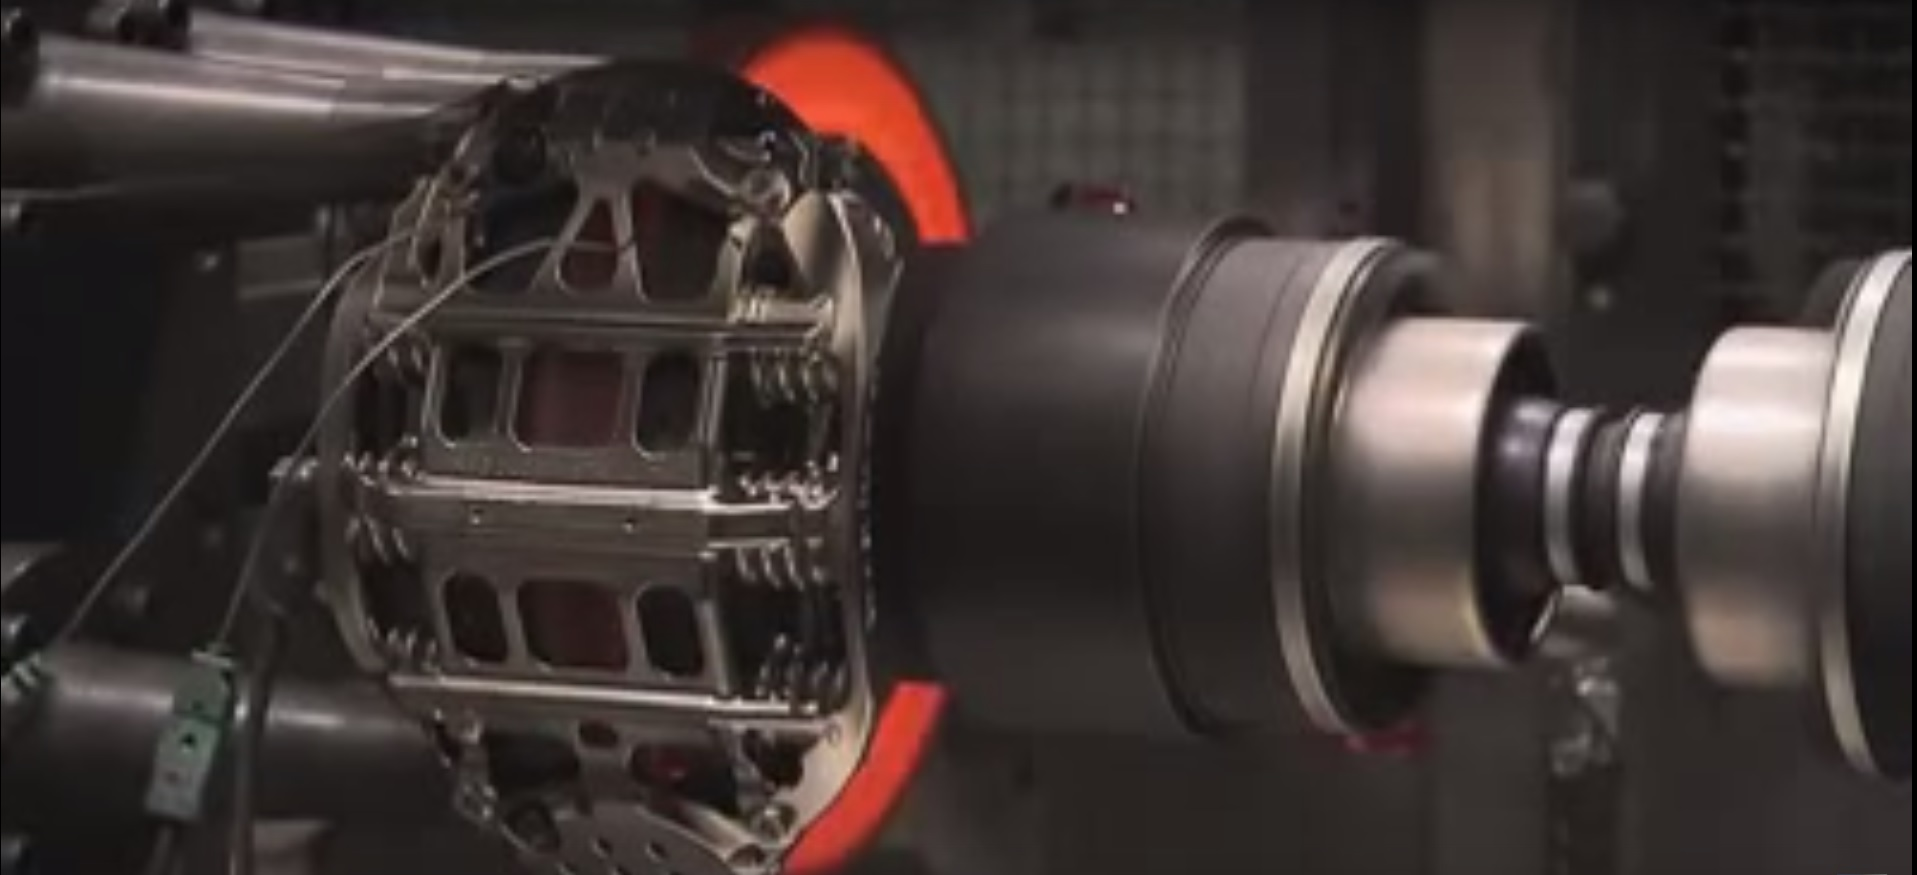 Video - F1 brakes being tested